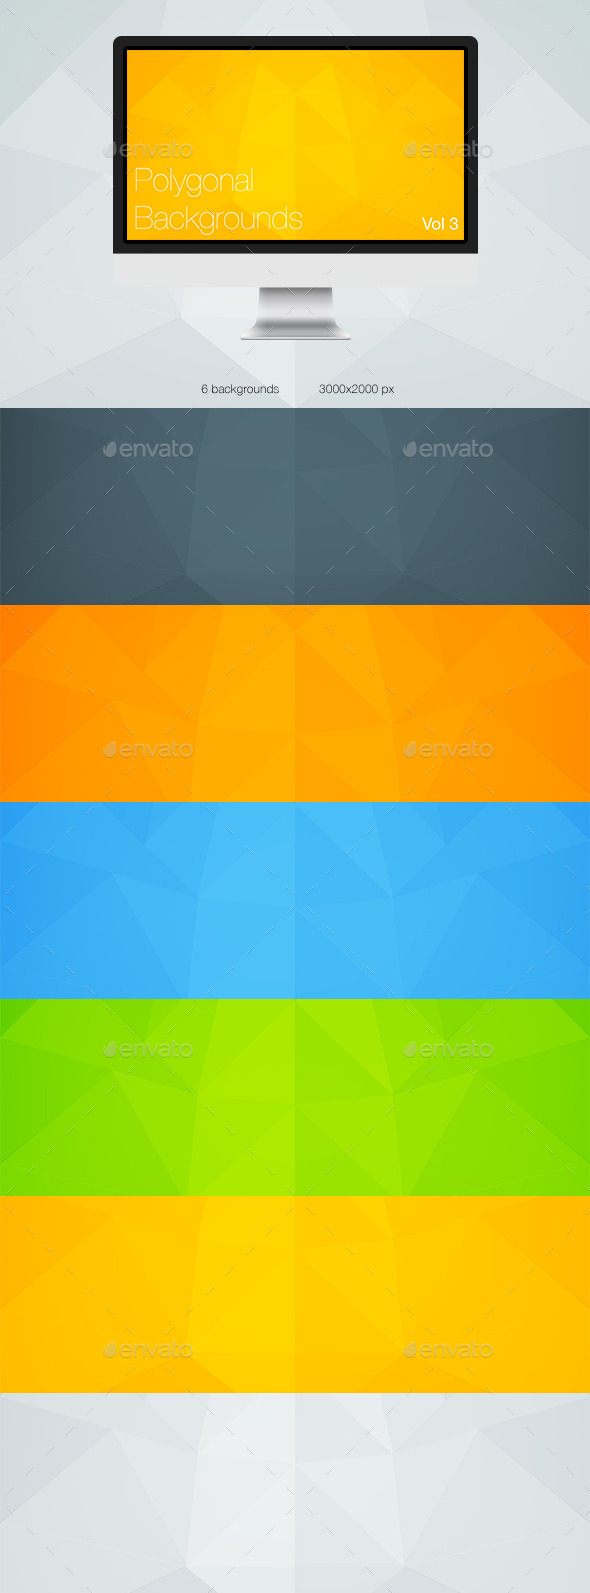 Polygonal Backgrounds Vol 3 - Abstract Backgrounds